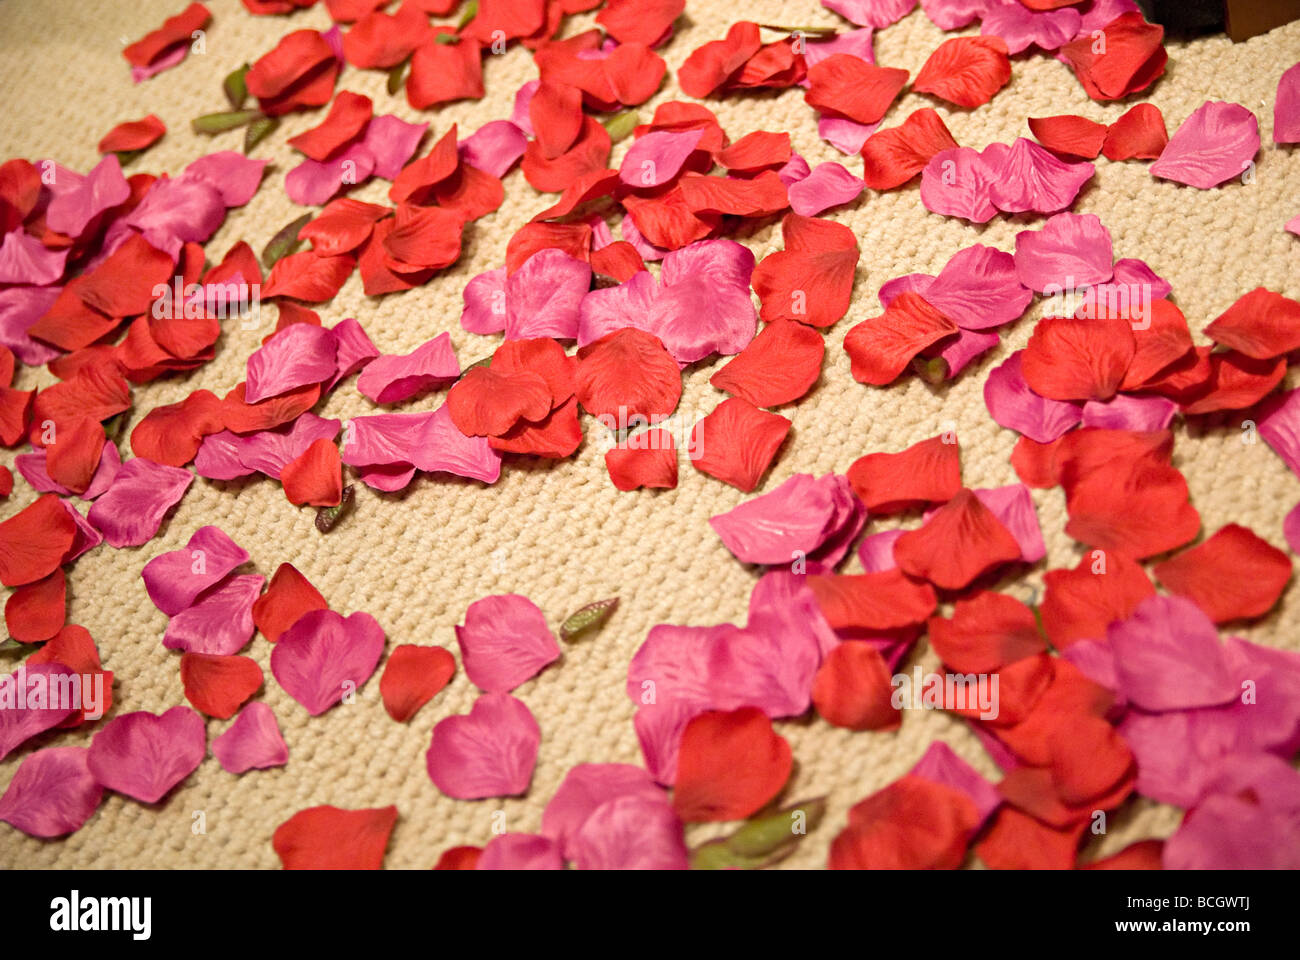 red petals thrown on the floor - Stock Image